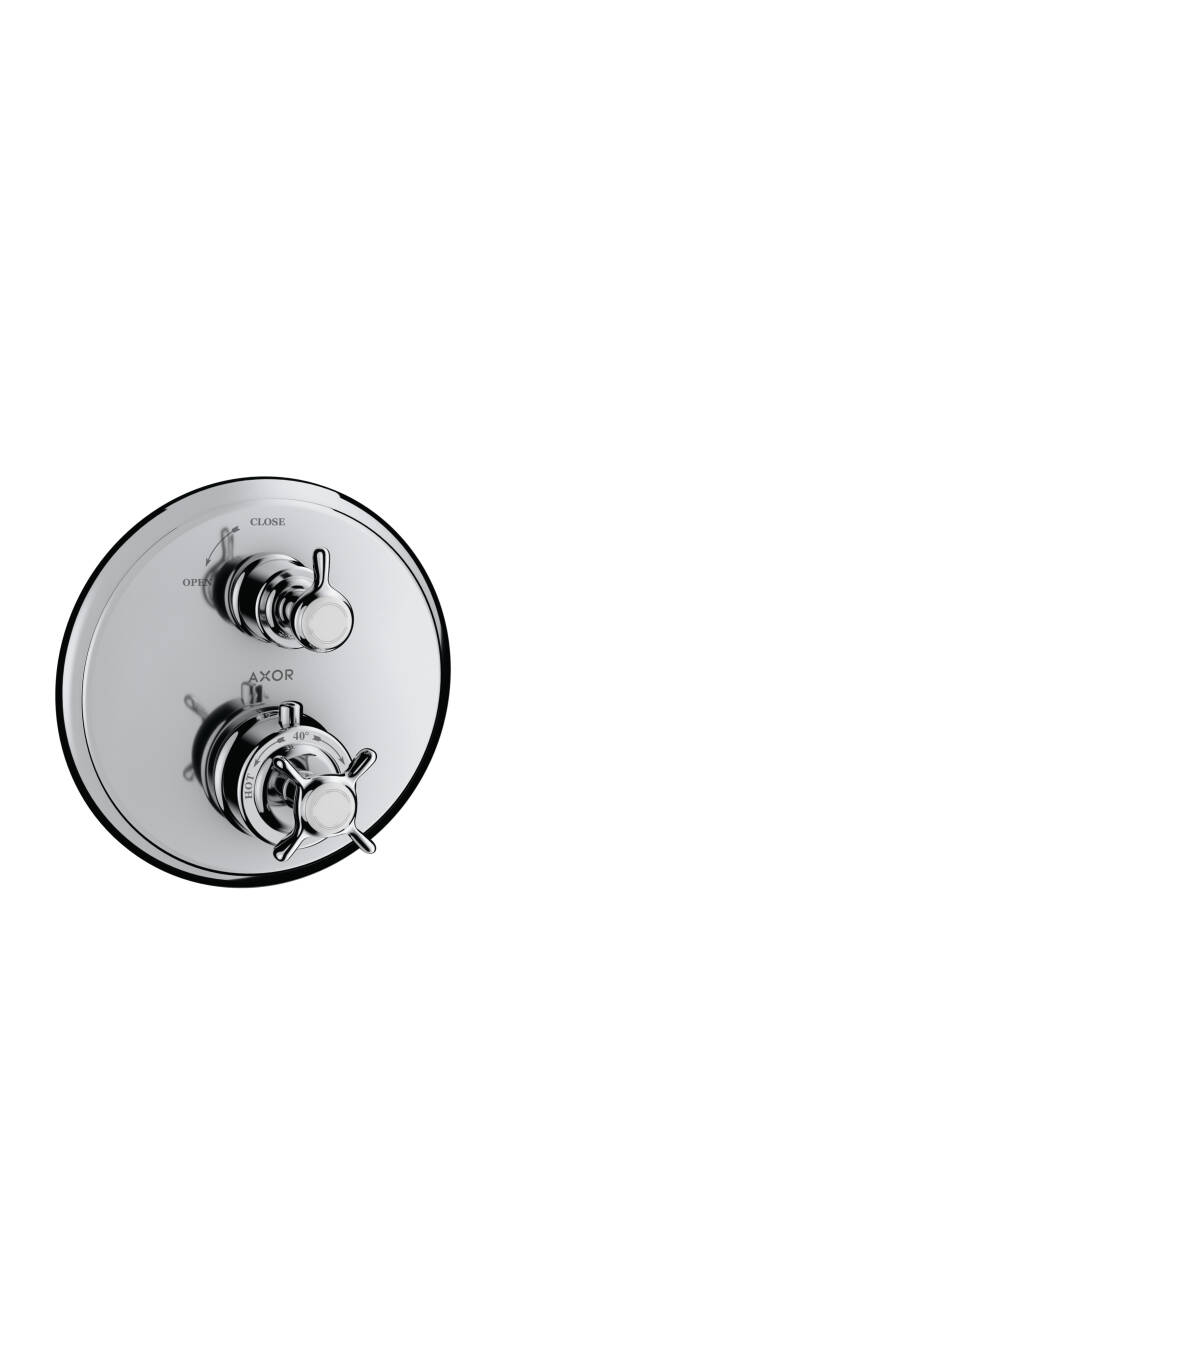 Thermostatic mixer for concealed installation with shut-off valve, Polished Chrome, 16800020